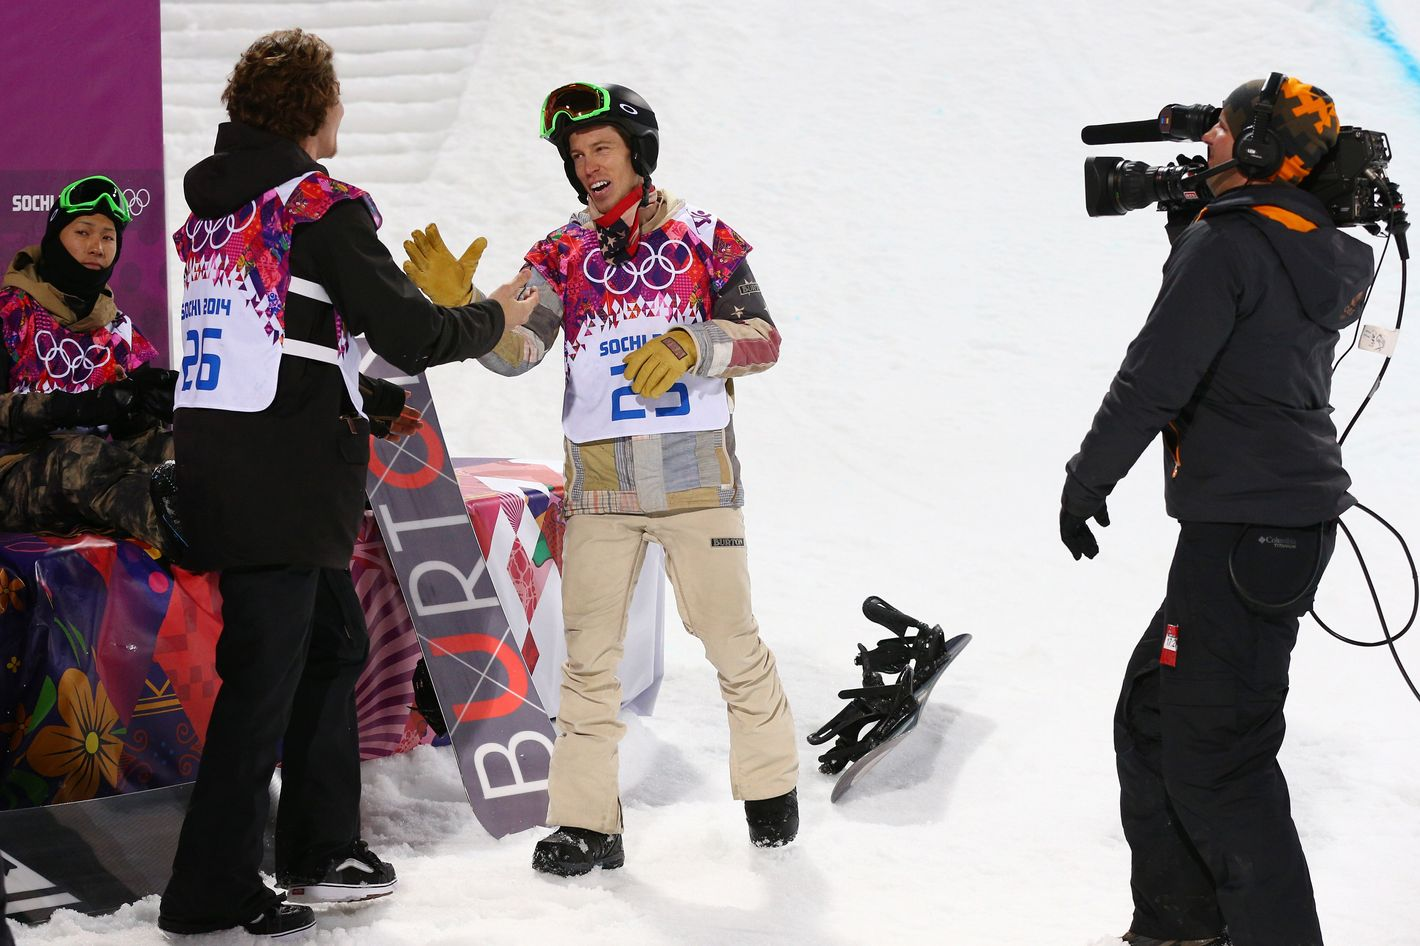 Shaun White of the United States congratulates gold medalist Iouri Podladtchikov of Switzerland after the Snowboard Men's Halfpipe Finals on day four of the Sochi 2014 Winter Olympics at Rosa Khutor Extreme Park on February 11, 2014 in Sochi, Russia.